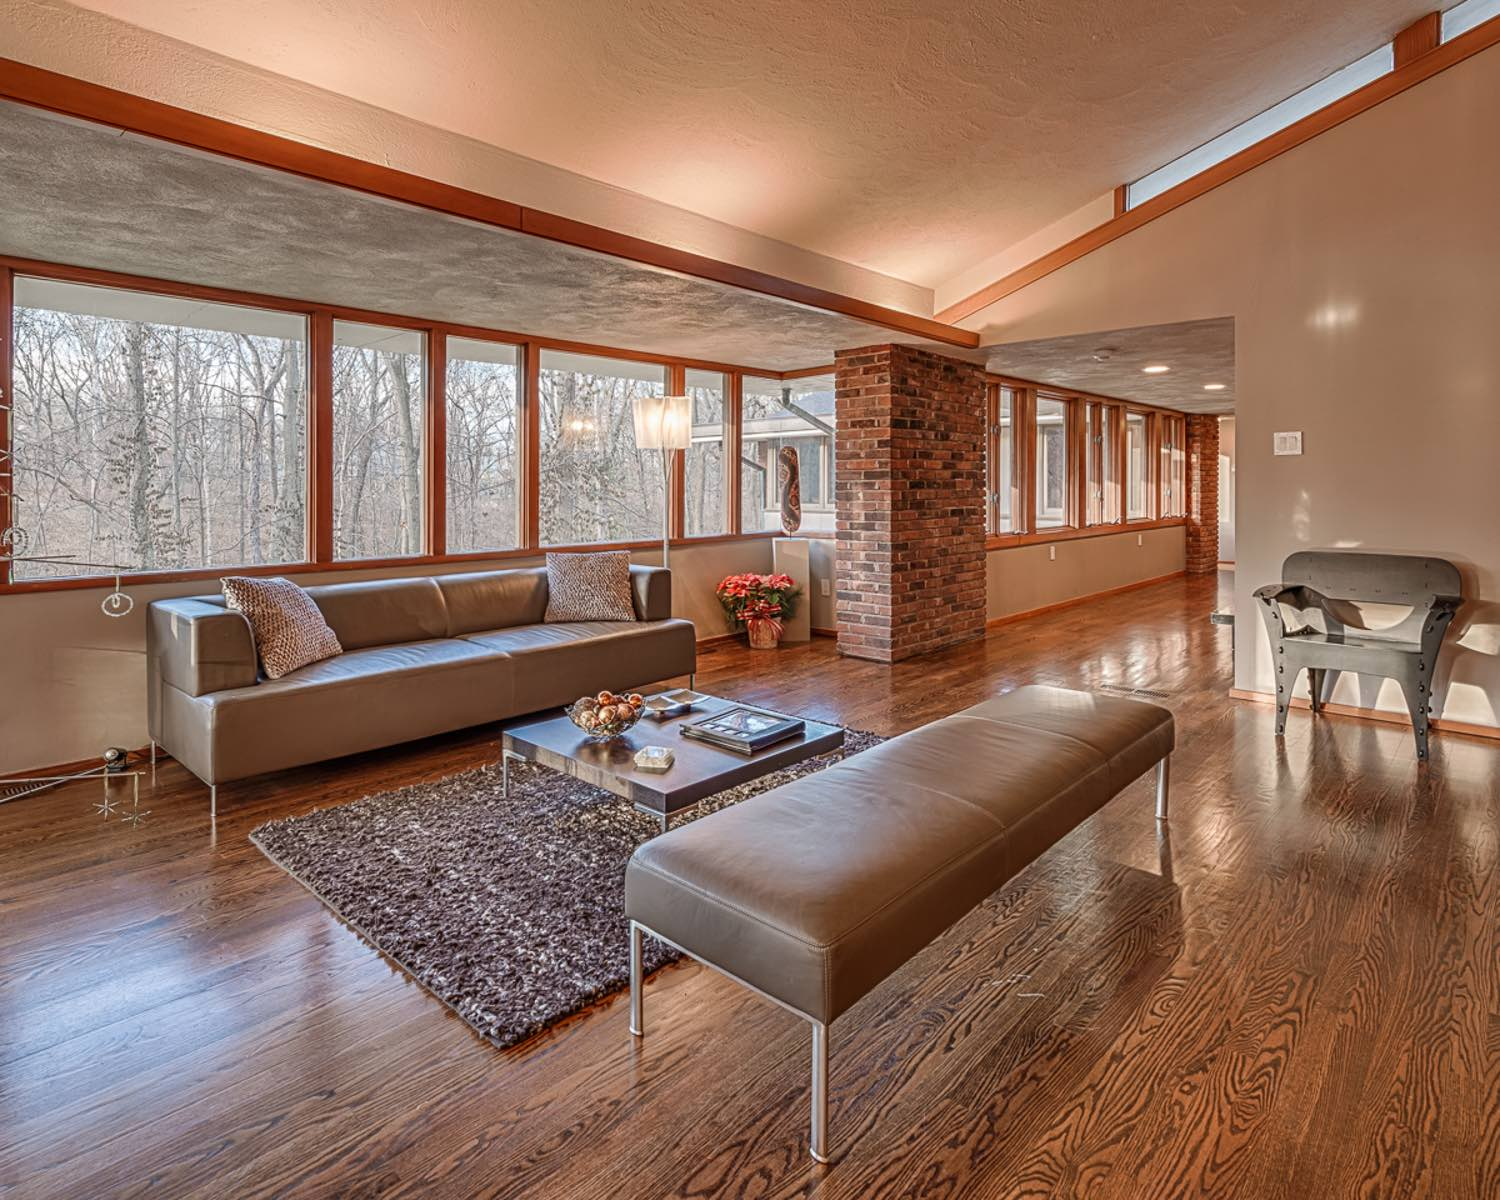 Photographs of a home on Deek Creek Hill in Ladue, Missouri for Dielmann Sotheby's International Realty agent Ted Wight